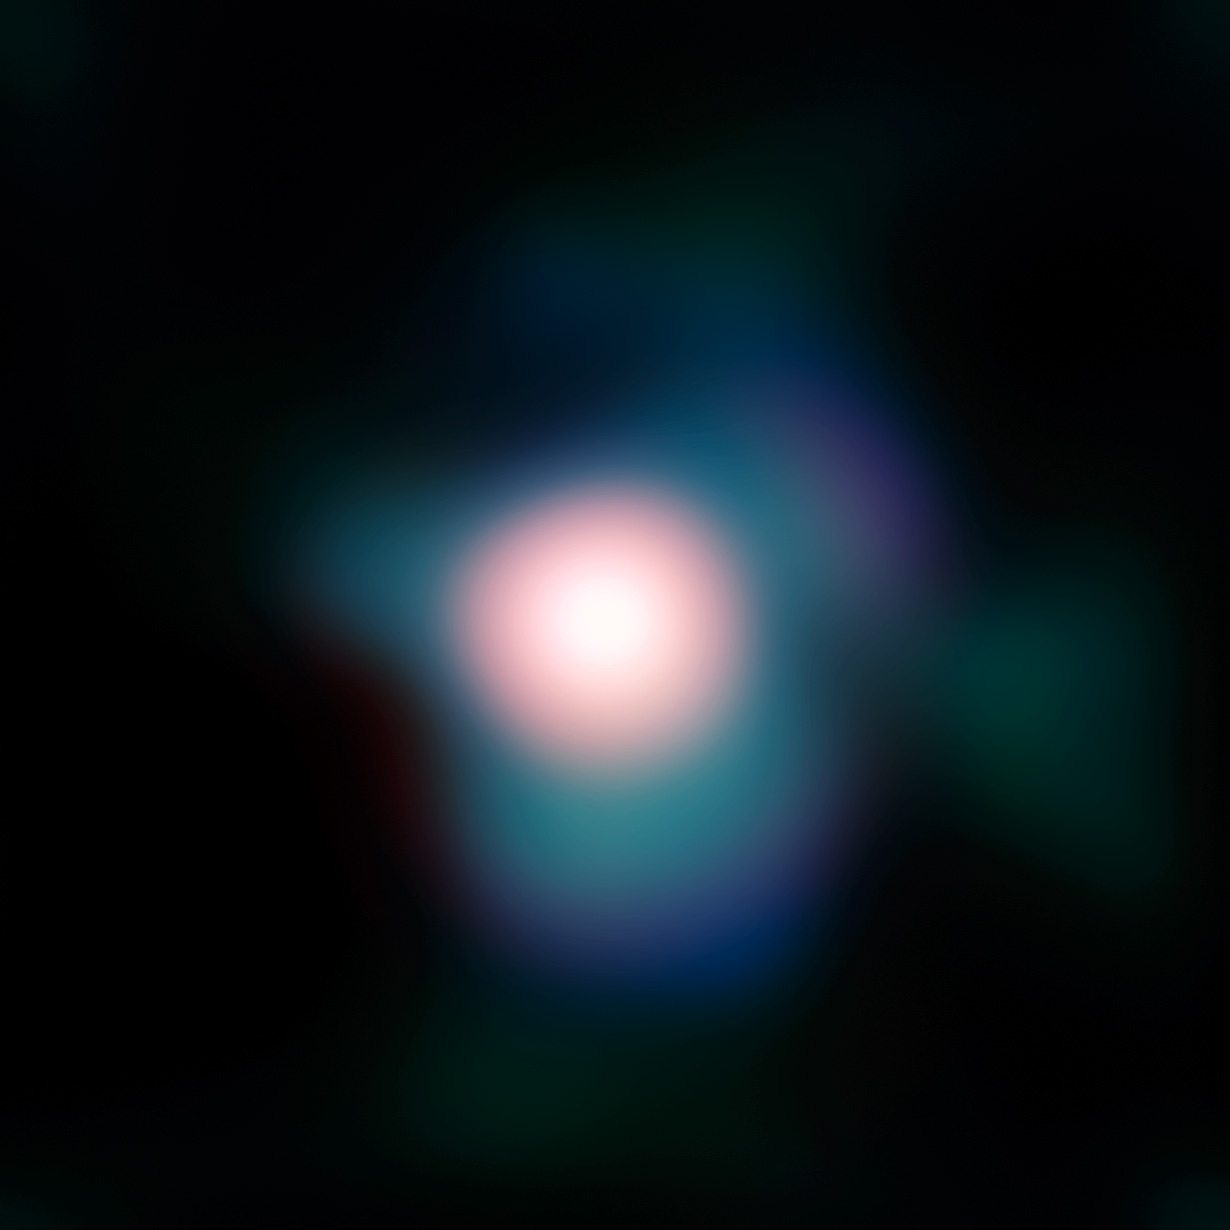 Betelgeuse Star Supernova (page 3) - Pics about space